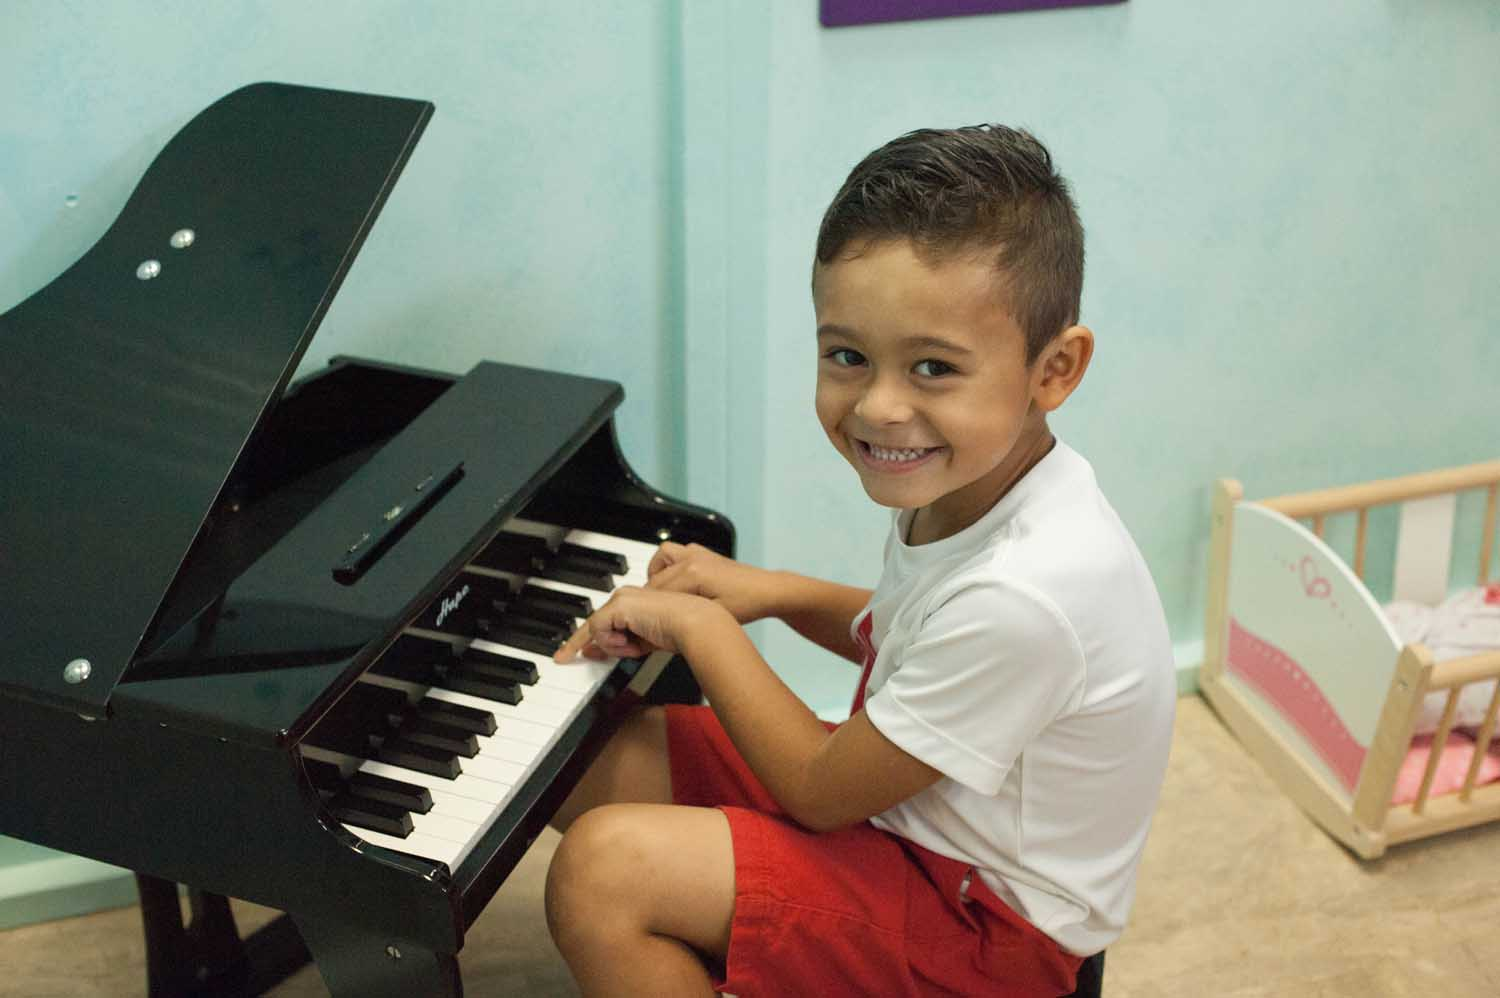 boy-playing-on-toy-piano.jpg